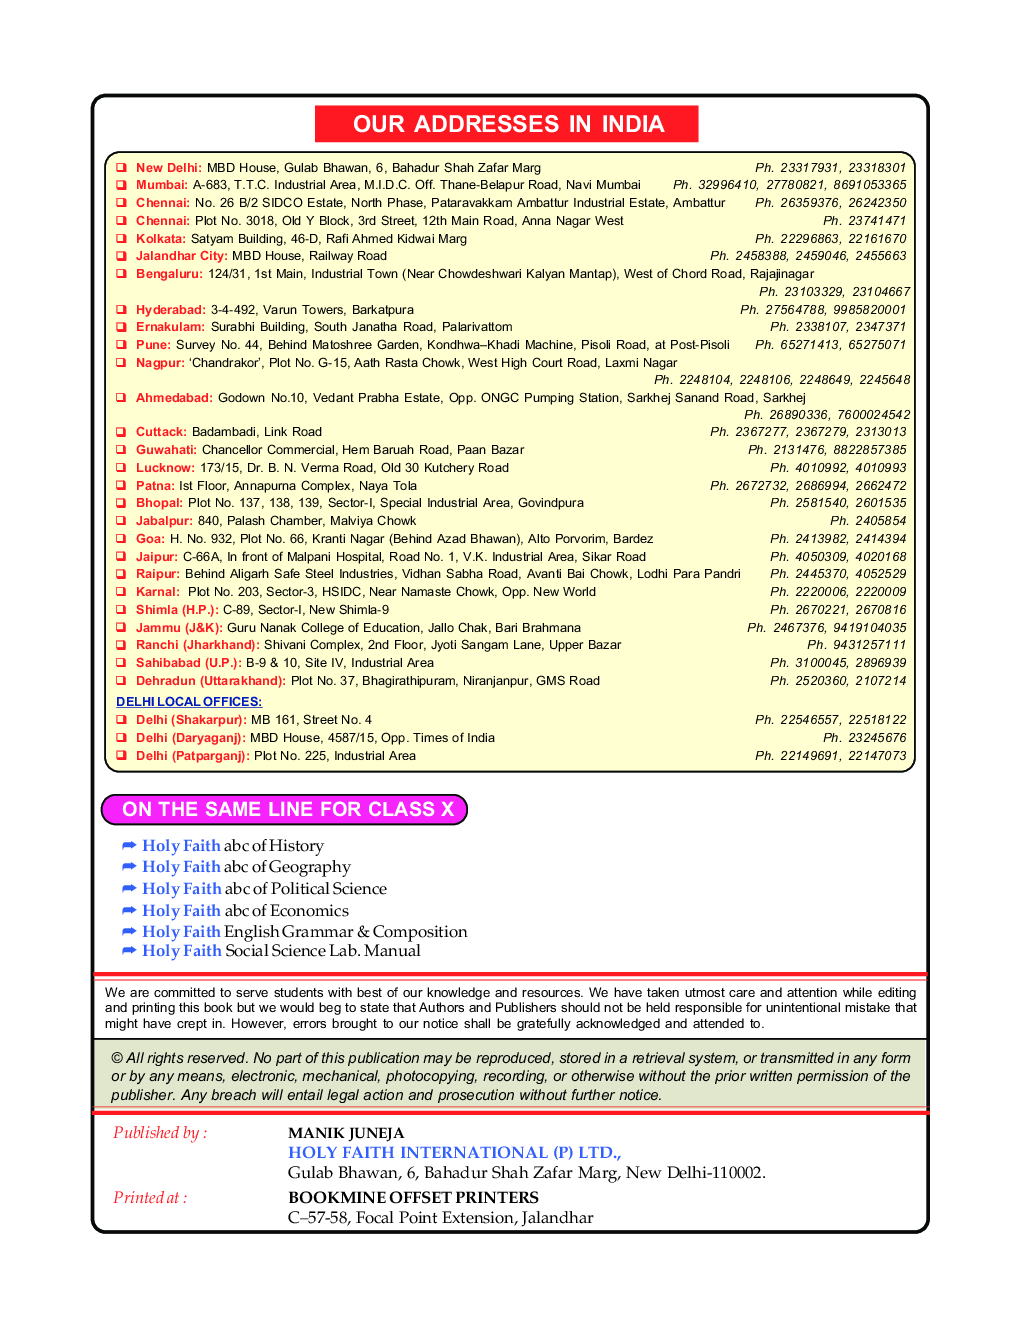 Experience In Web Reader. Holy Faith ABS Of Social Science Political Science  For Class-X ...